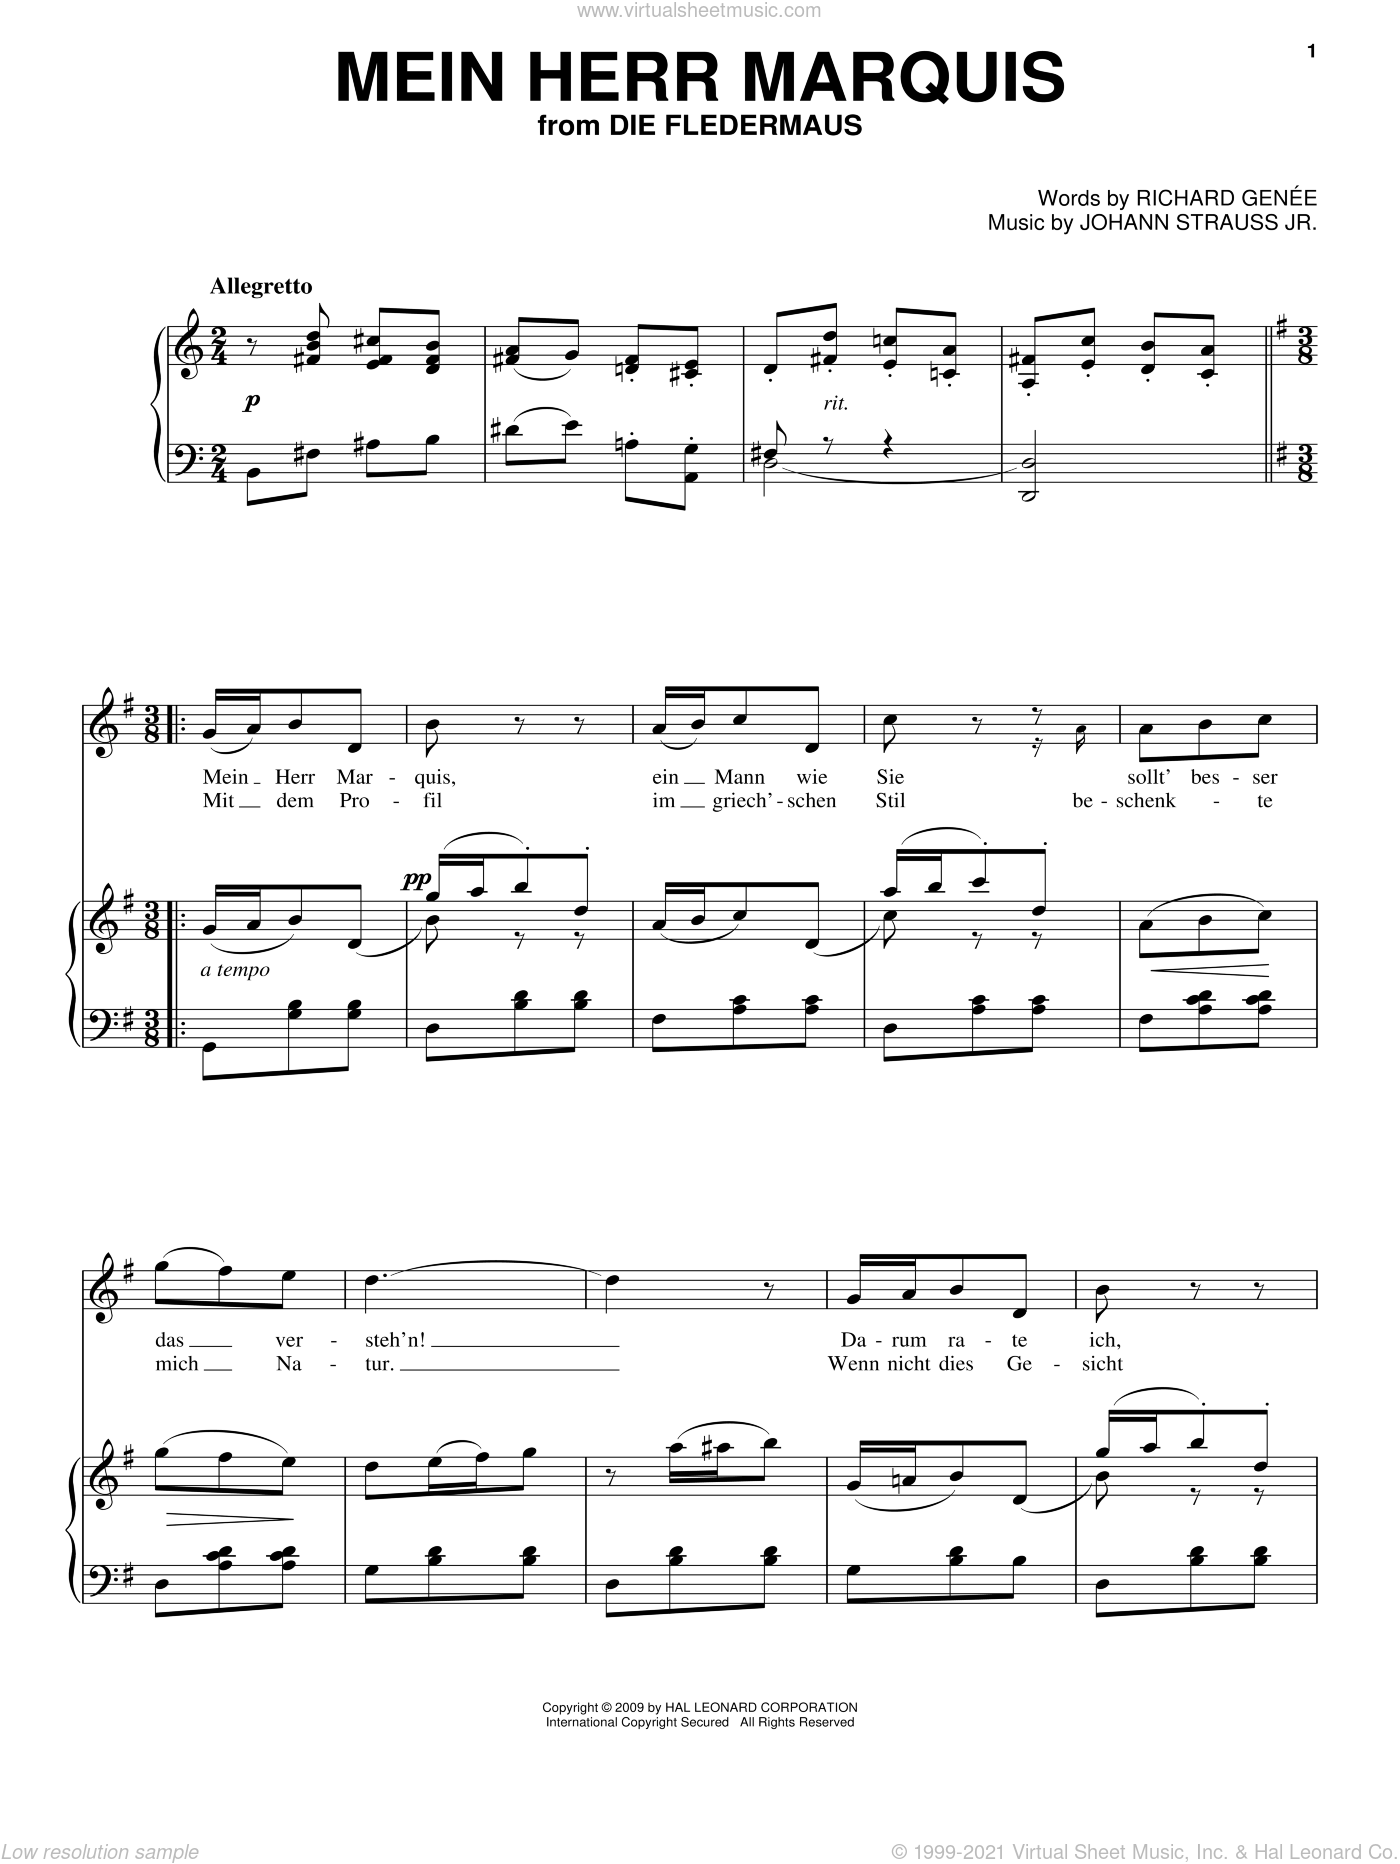 Mein Herr Marquis sheet music for voice, piano or guitar by Johann Strauss, Jr. and Richard Genee, classical score, intermediate skill level